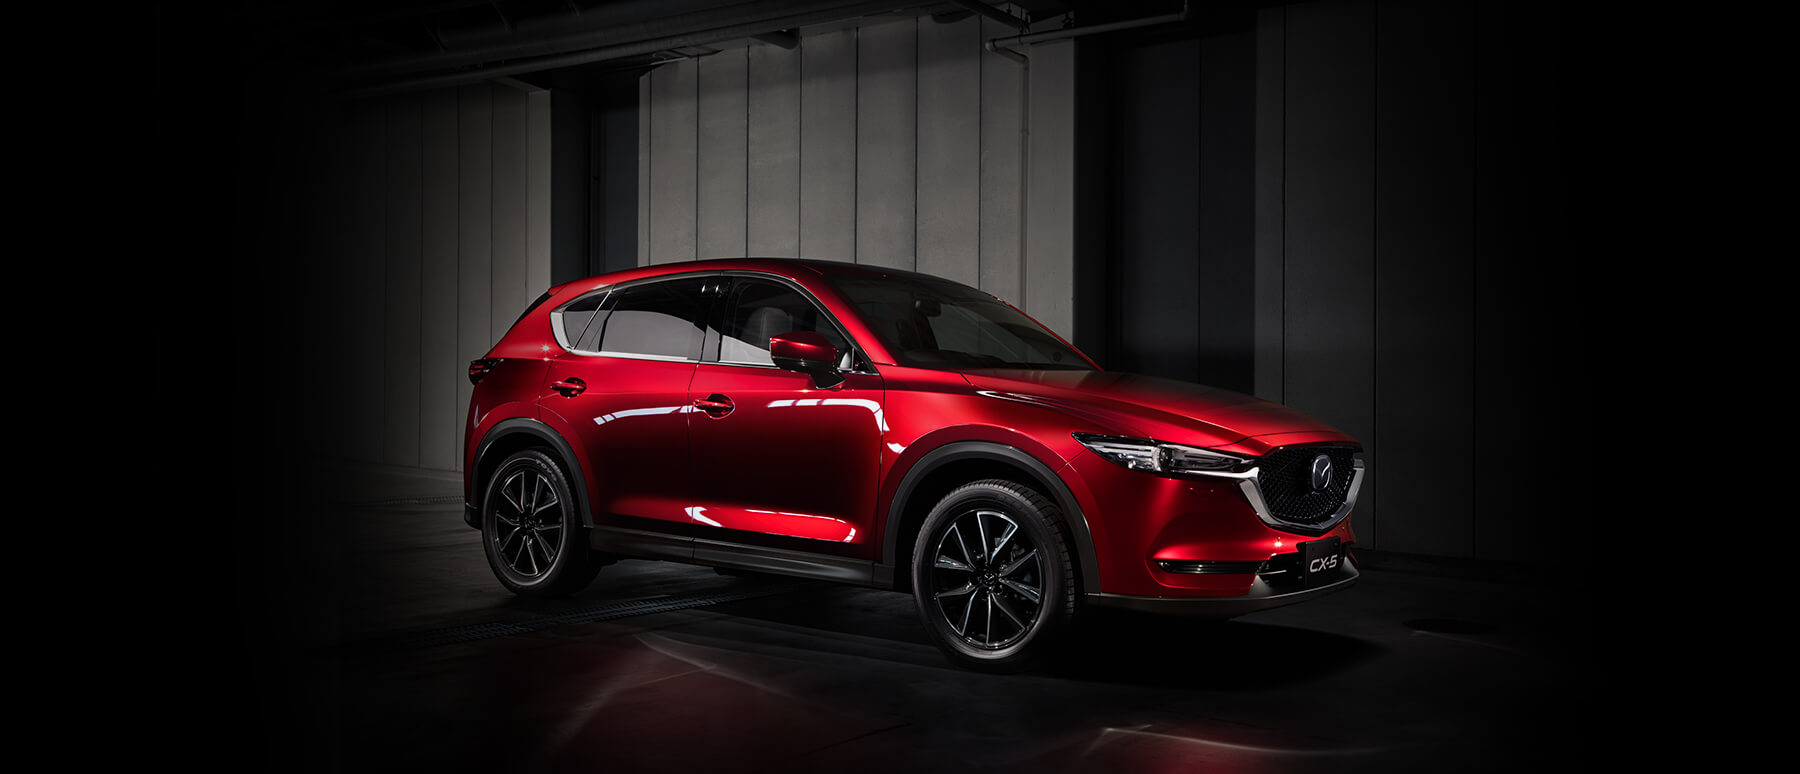 2017 mazda cx 5 models have arrived and are ready for you cardinaleway mazda las vegas. Black Bedroom Furniture Sets. Home Design Ideas